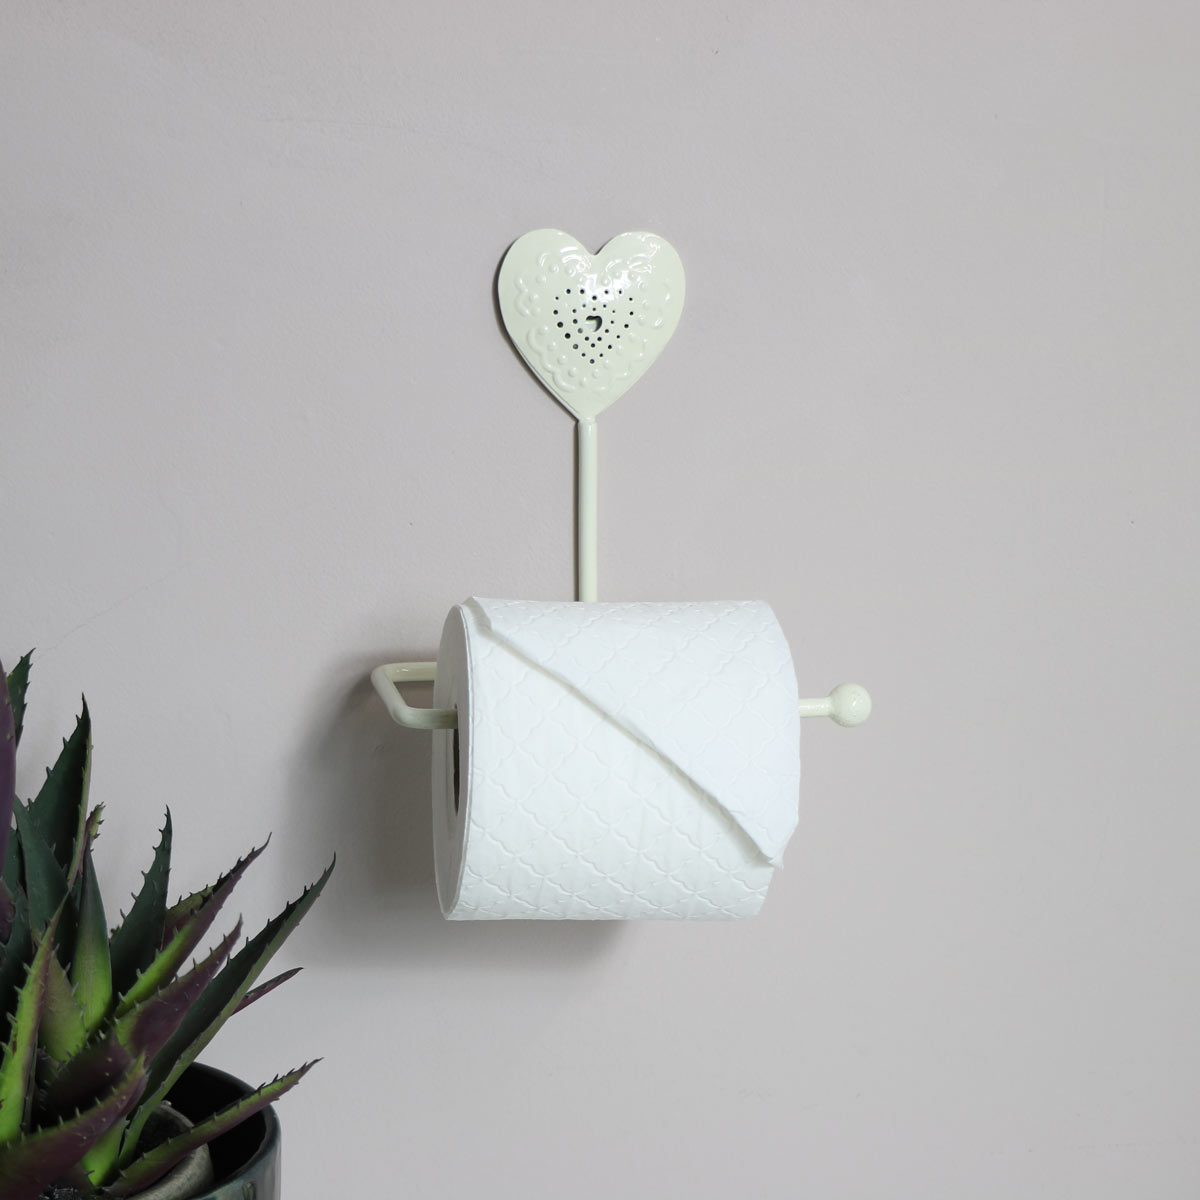 Cream Heart Design Toilet Roll Holder Bathroom Loo Vintage